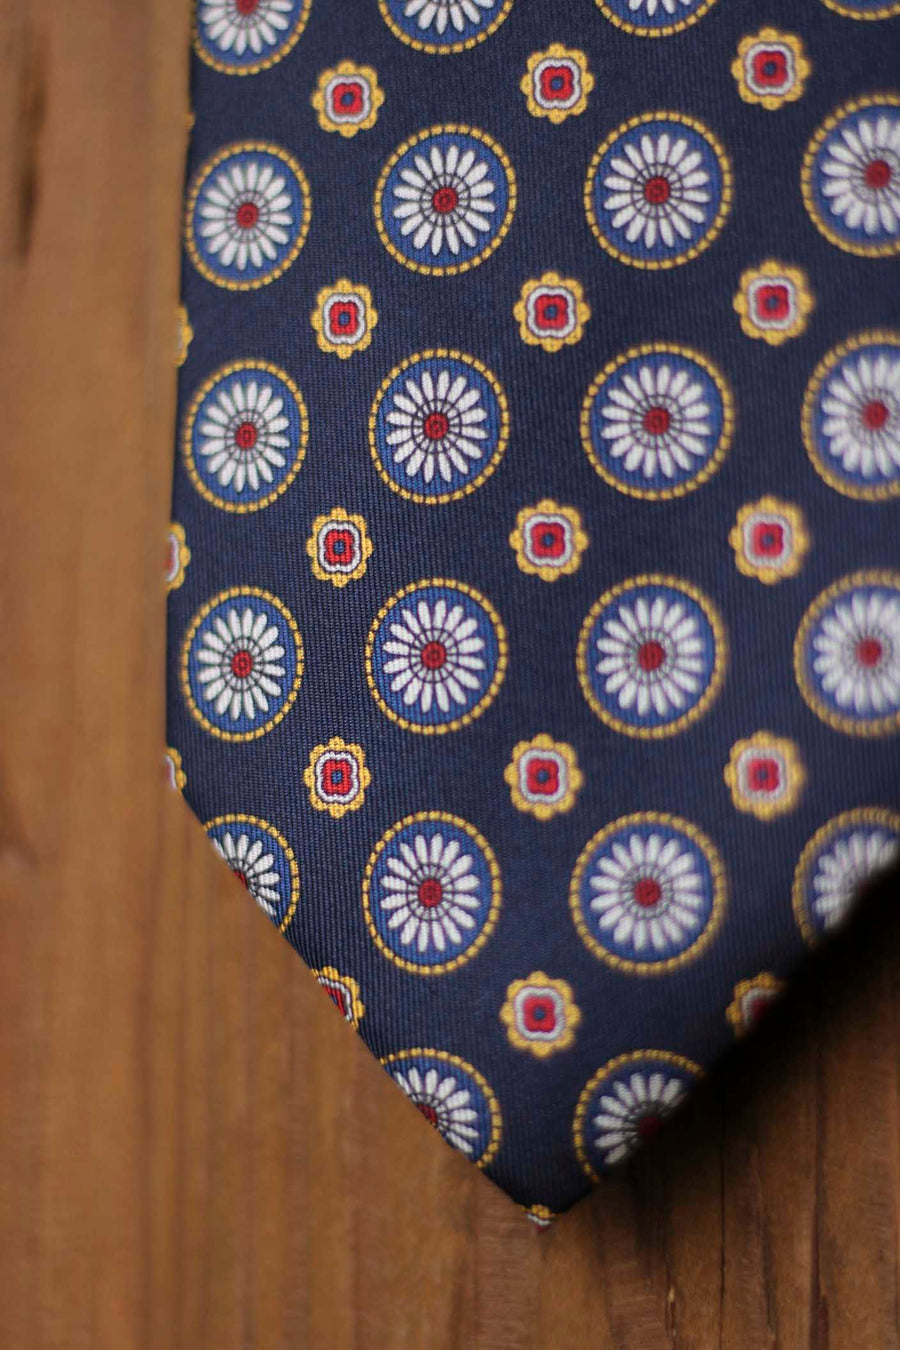 Napoli Navy Blue Silk Tie with Blue, White and Yellow Geometry